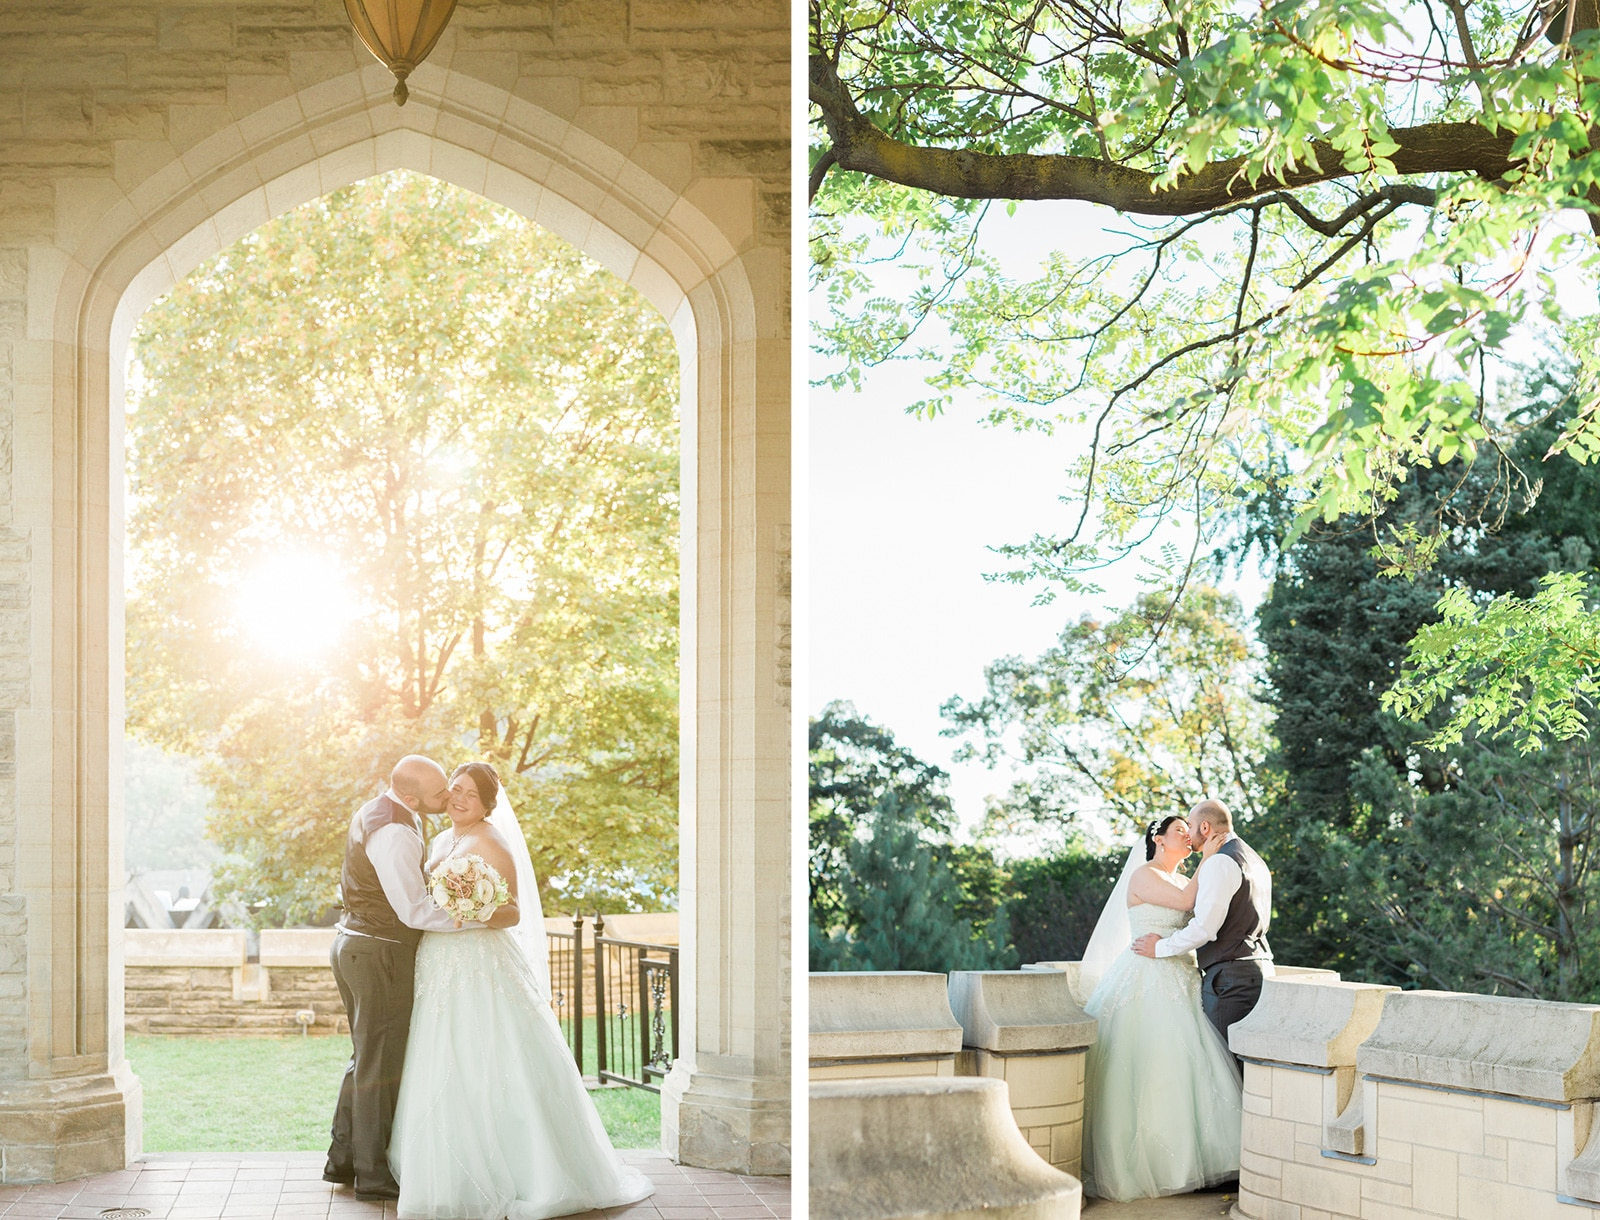 Magical Fairytale Wedding at Casa Loma in Toronto: Linda + Philip